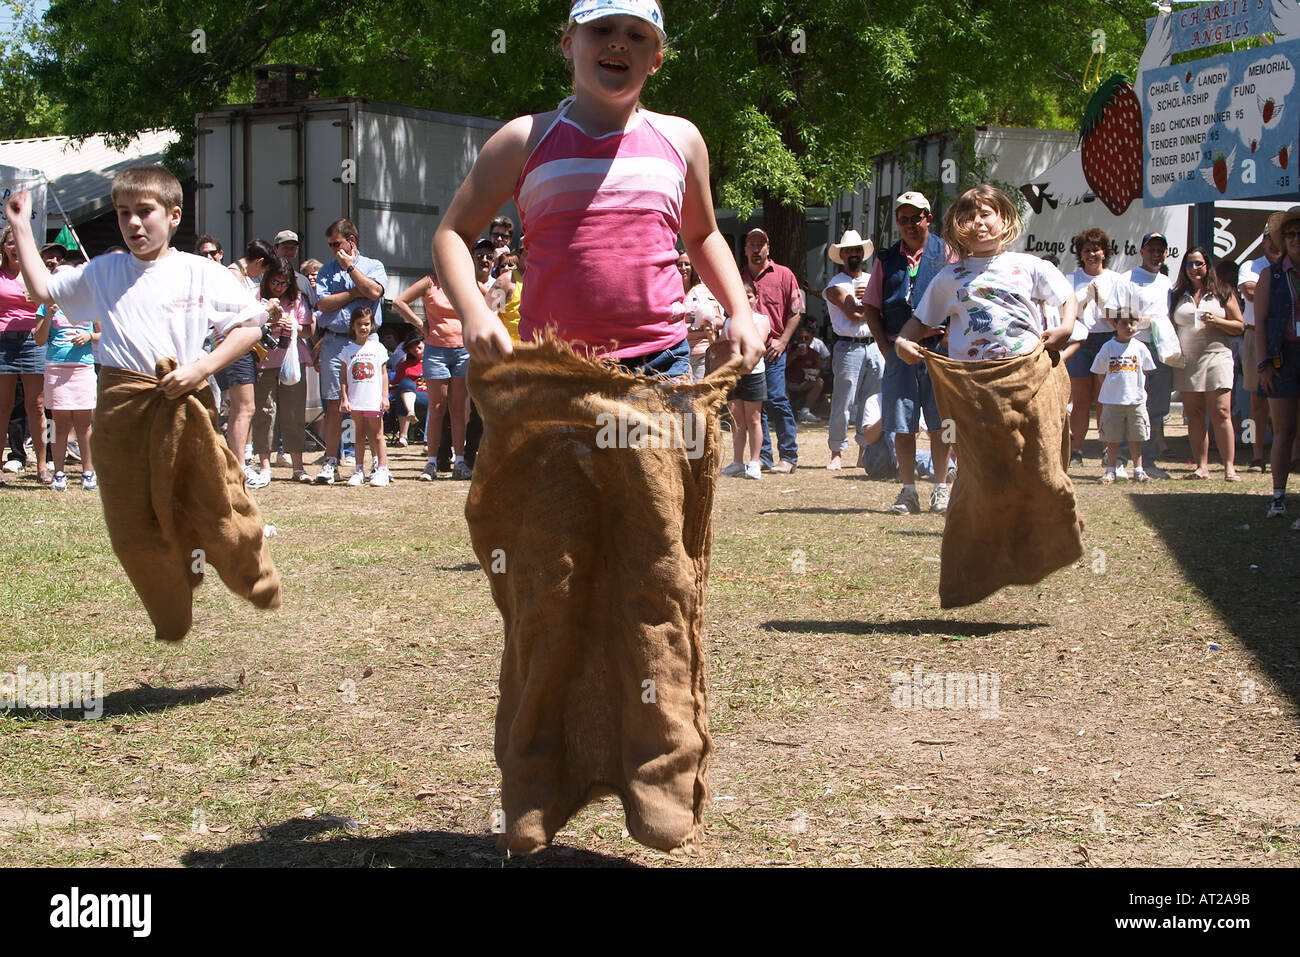 Festival goers participate in a sack race - Stock Image